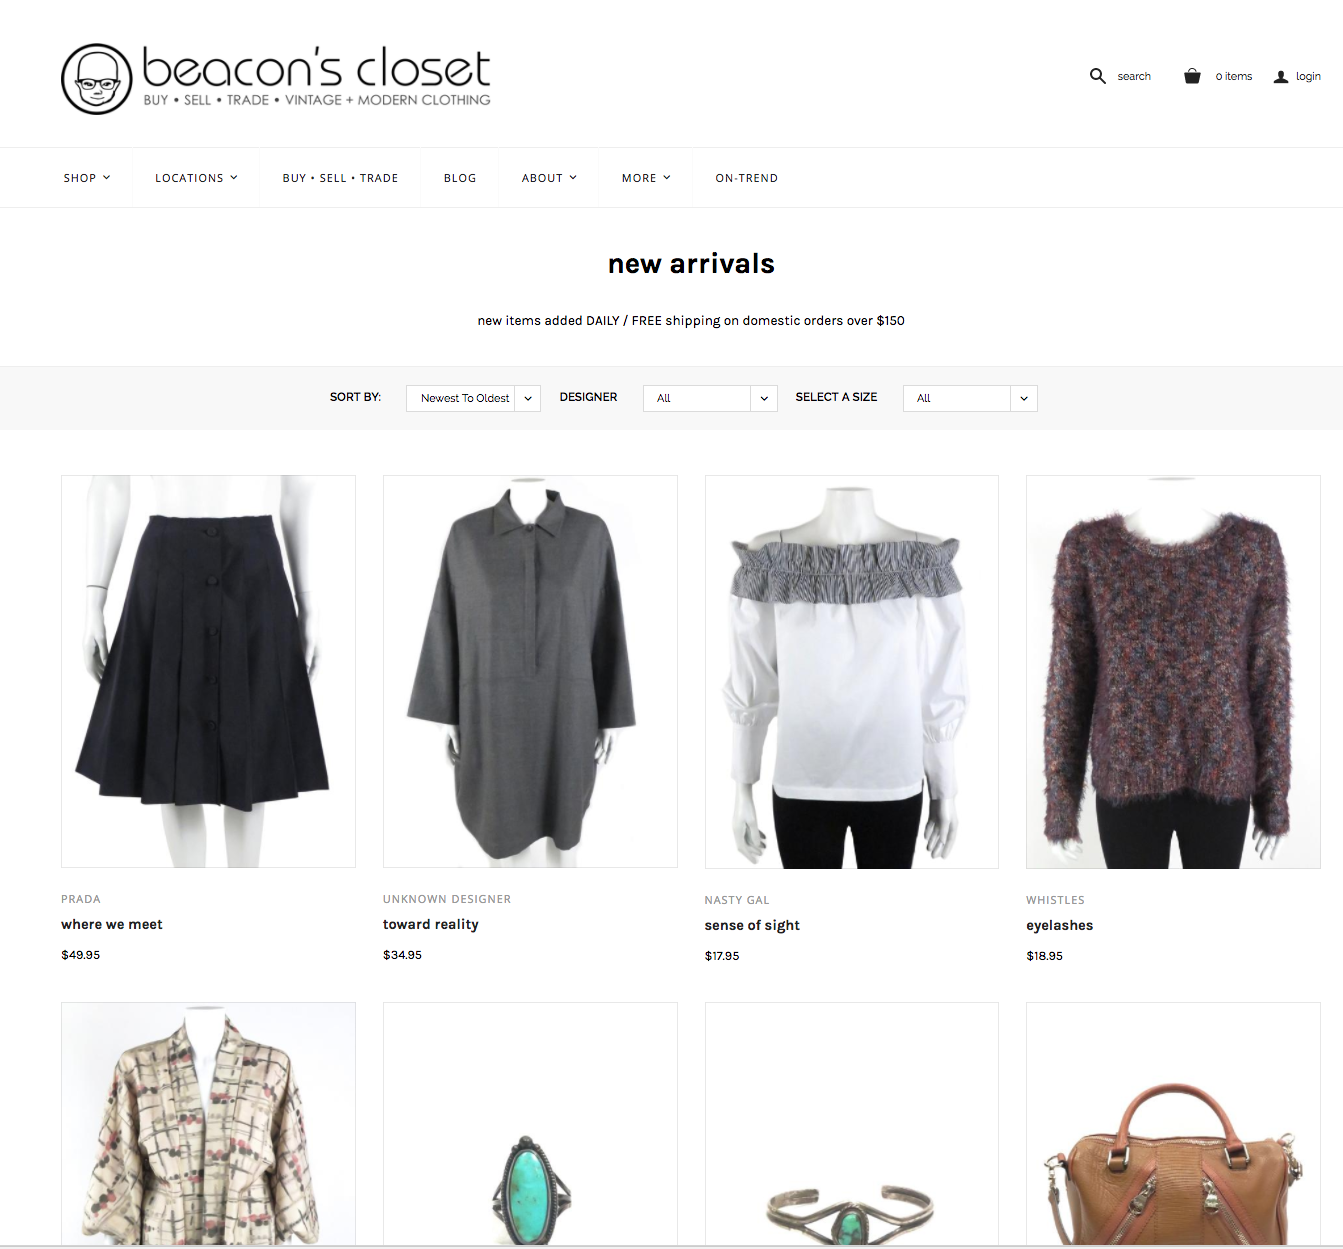 0307d6c3086 17 Best Discount Clothing Websites 2017 - Top Discount Shopping Sites